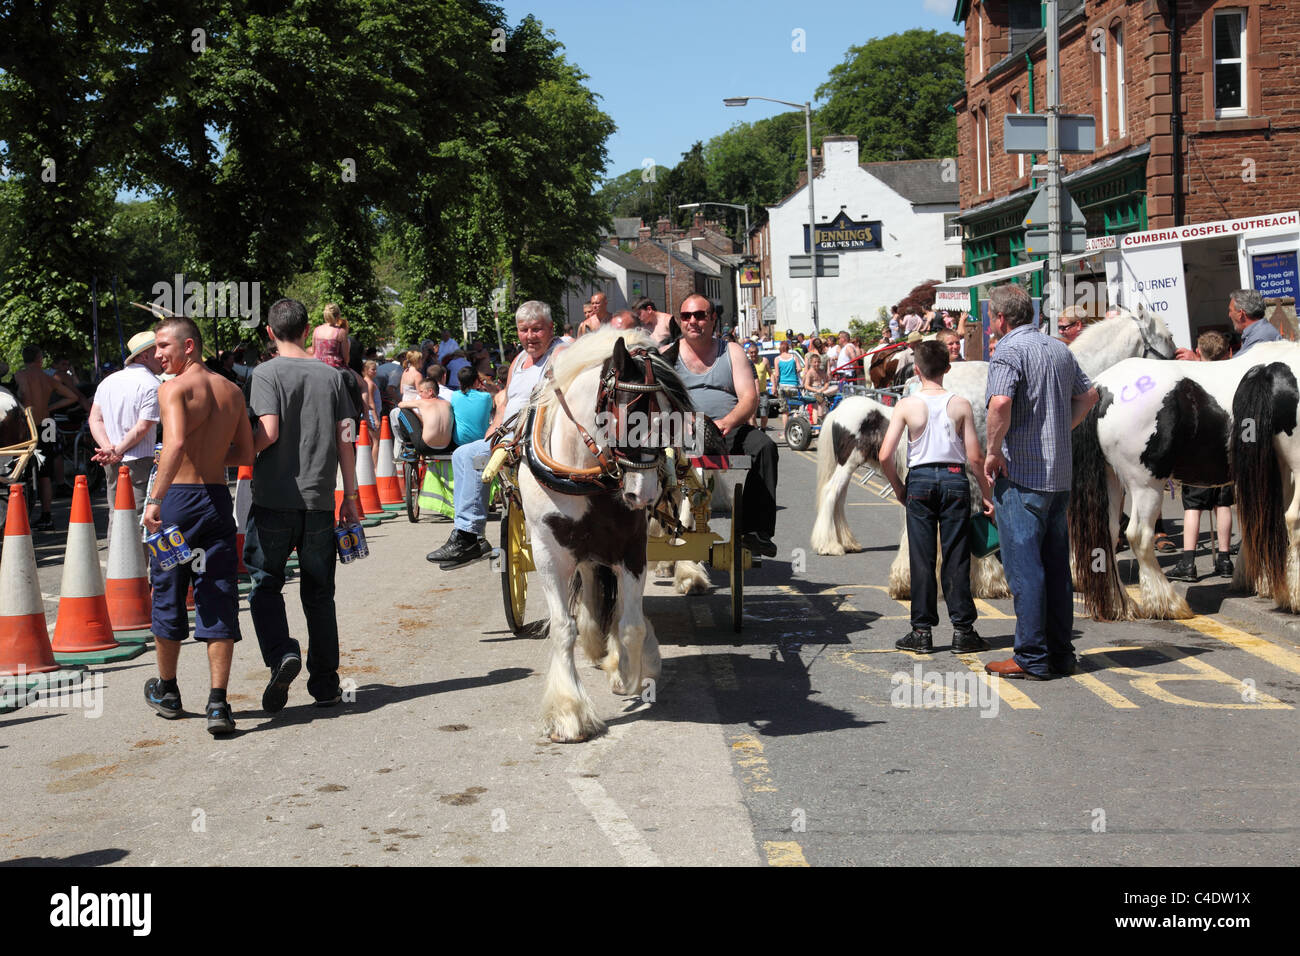 Horse dealers at the Appleby Horse Fair, Appleby-In-Westmorland, Cumbria, England, U.K. - Stock Image